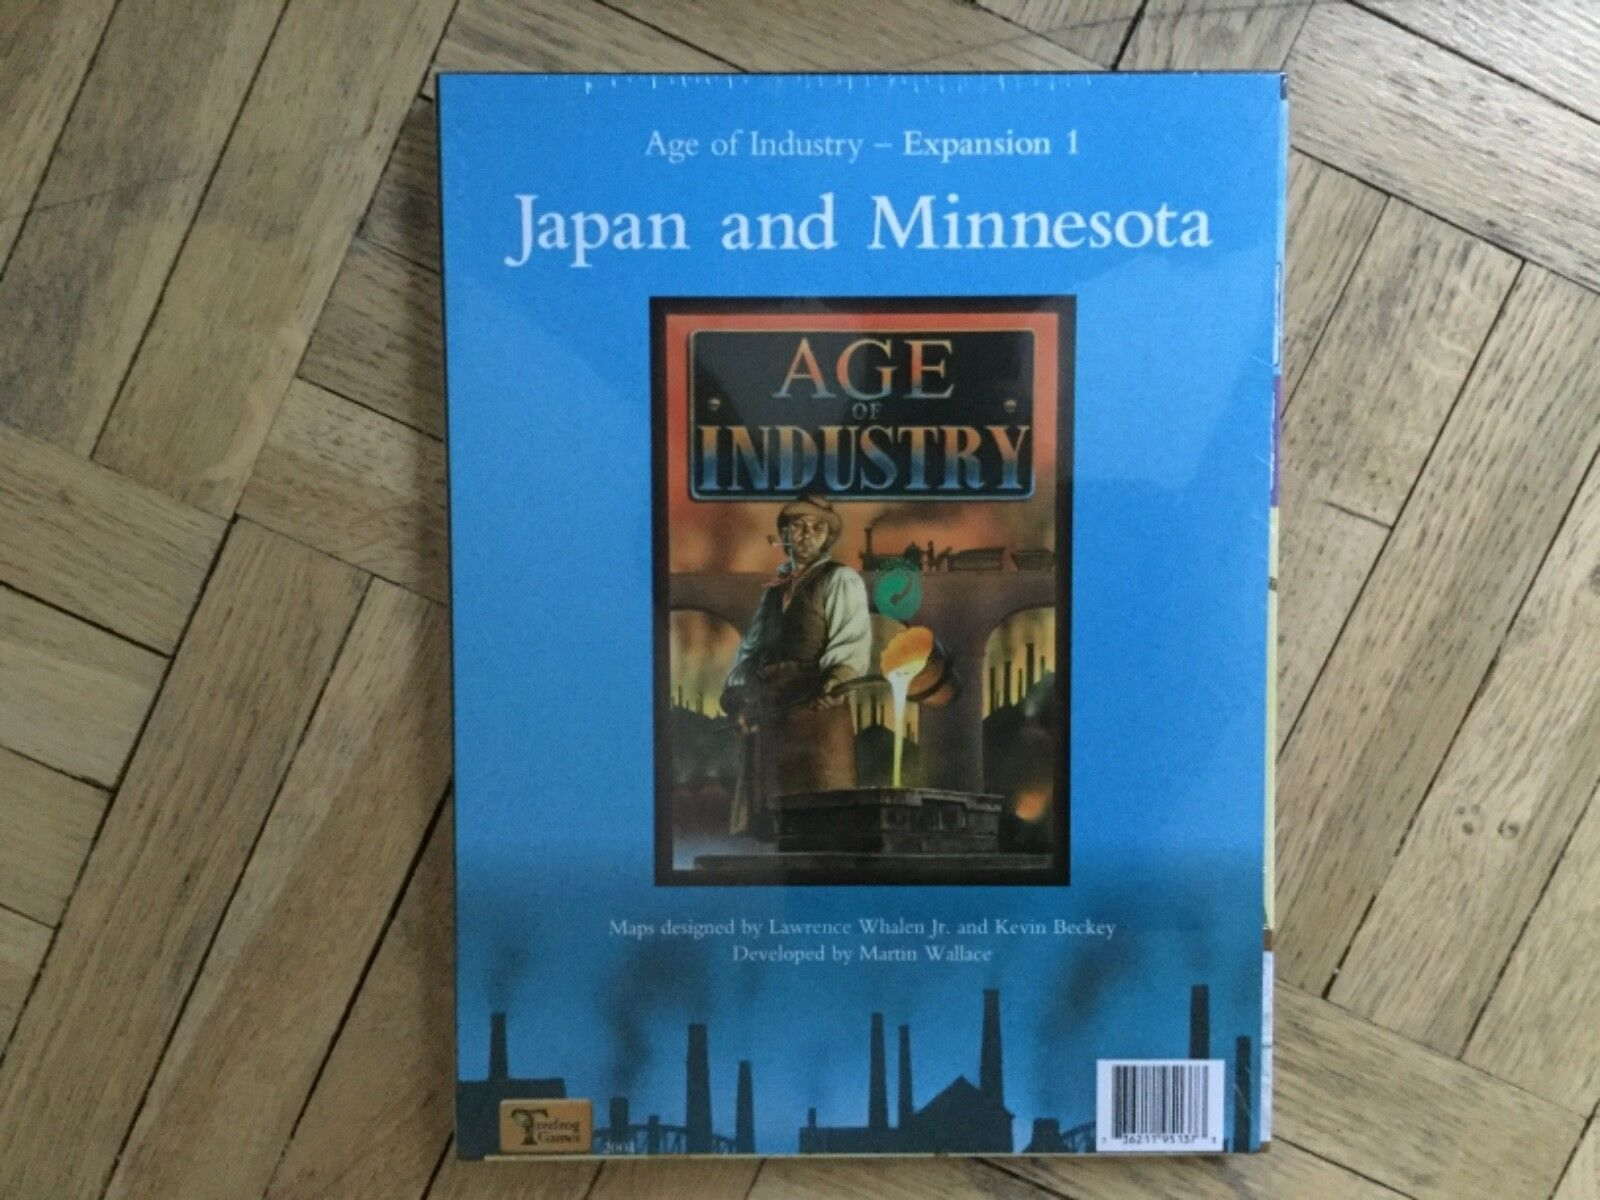 Treefrog Age of Industry - Expansion Erweiterung Japan and Minnesota - Wallace